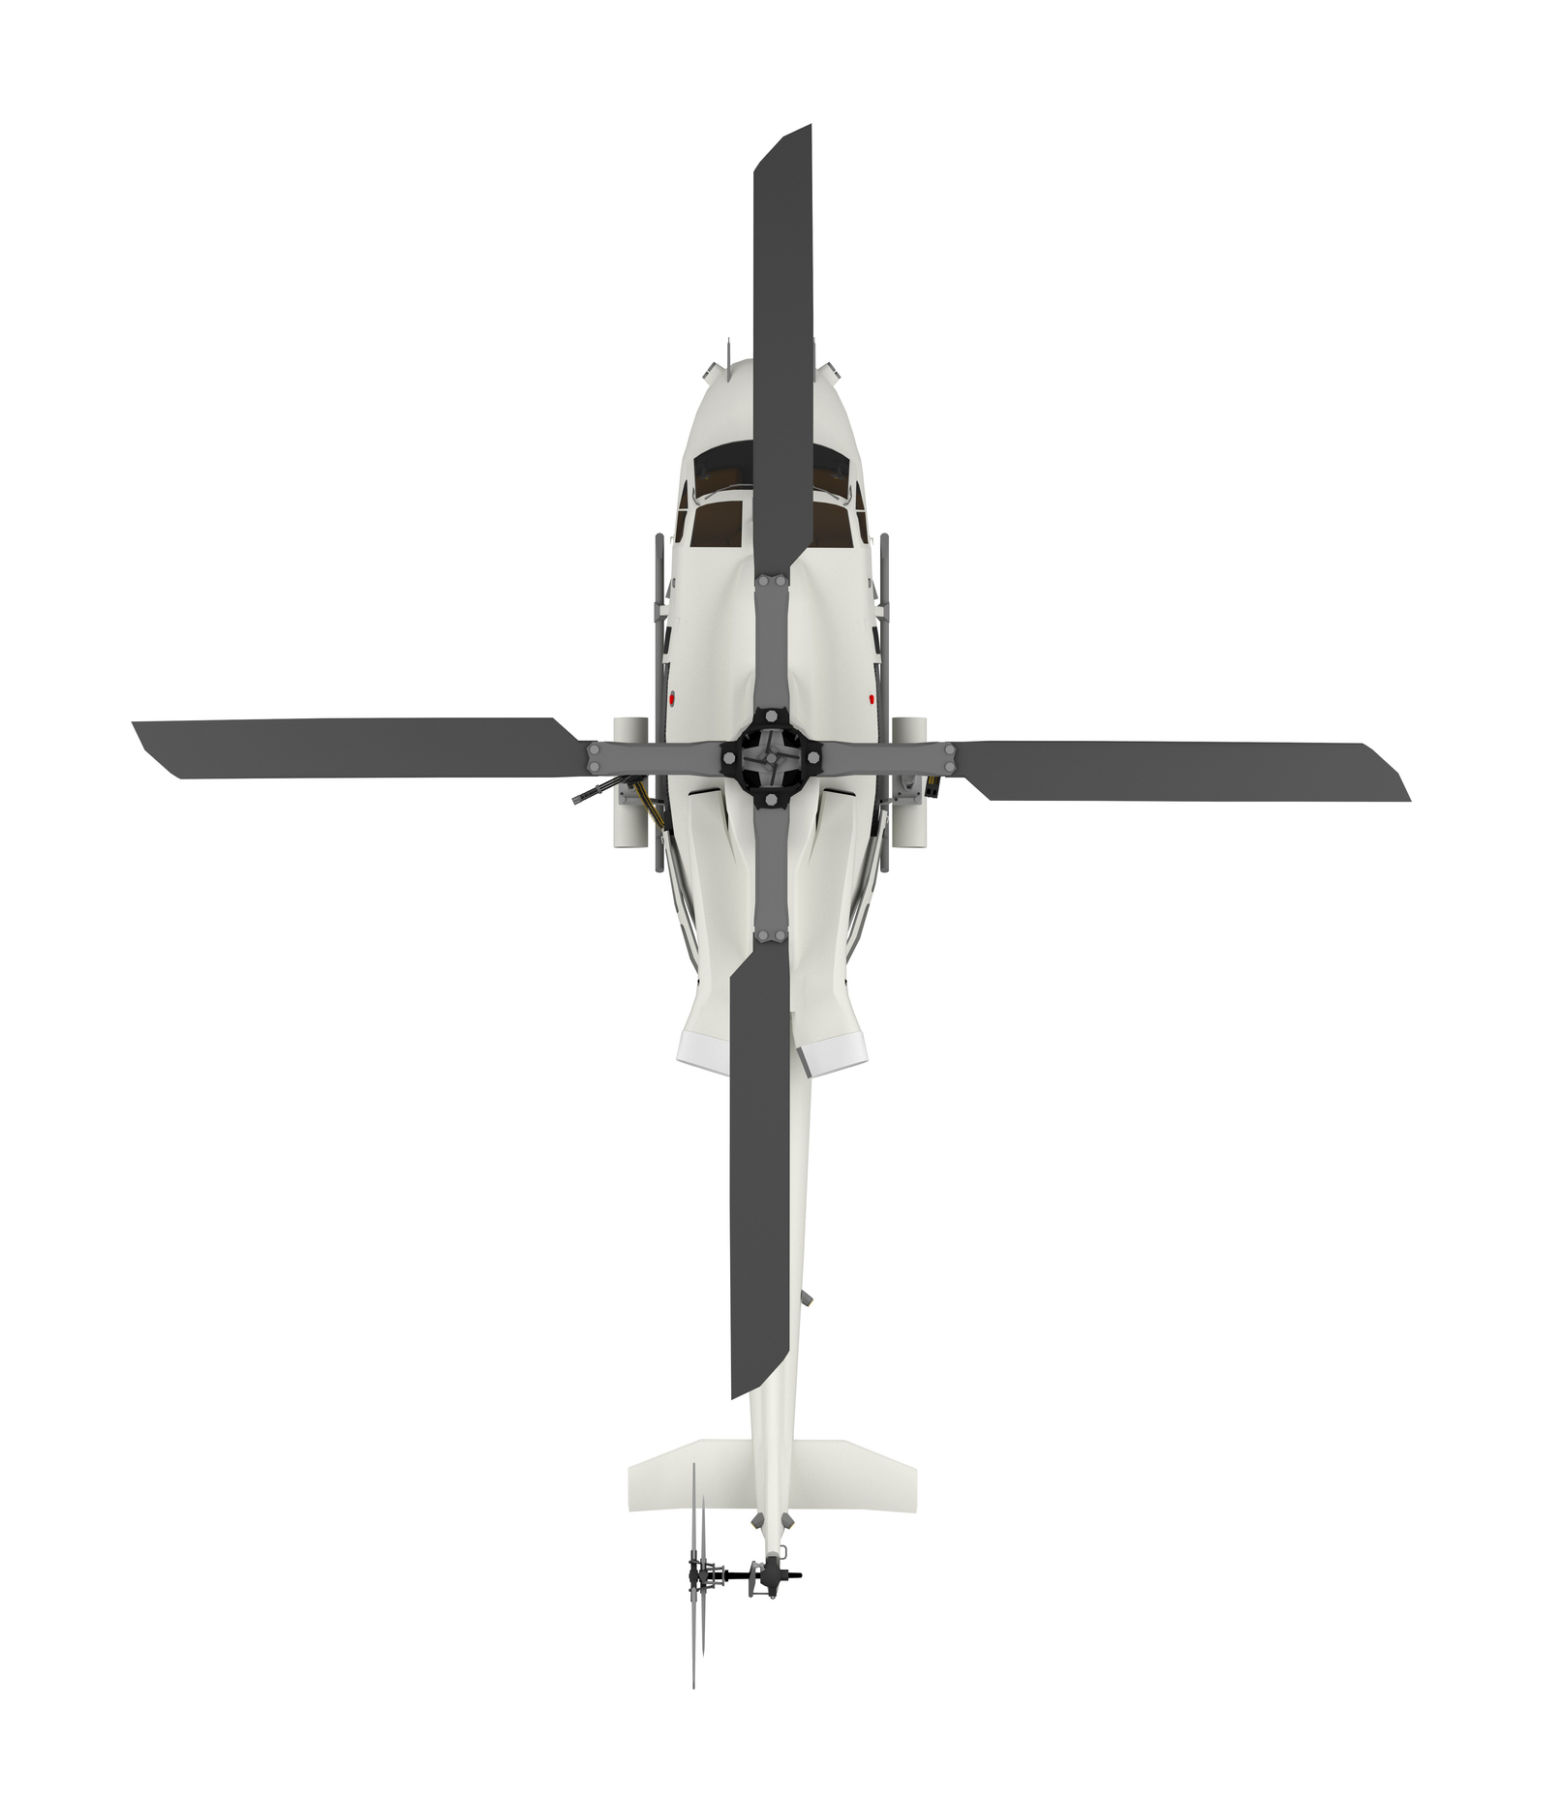 military helicopter top view isolated on white. 3d rendering